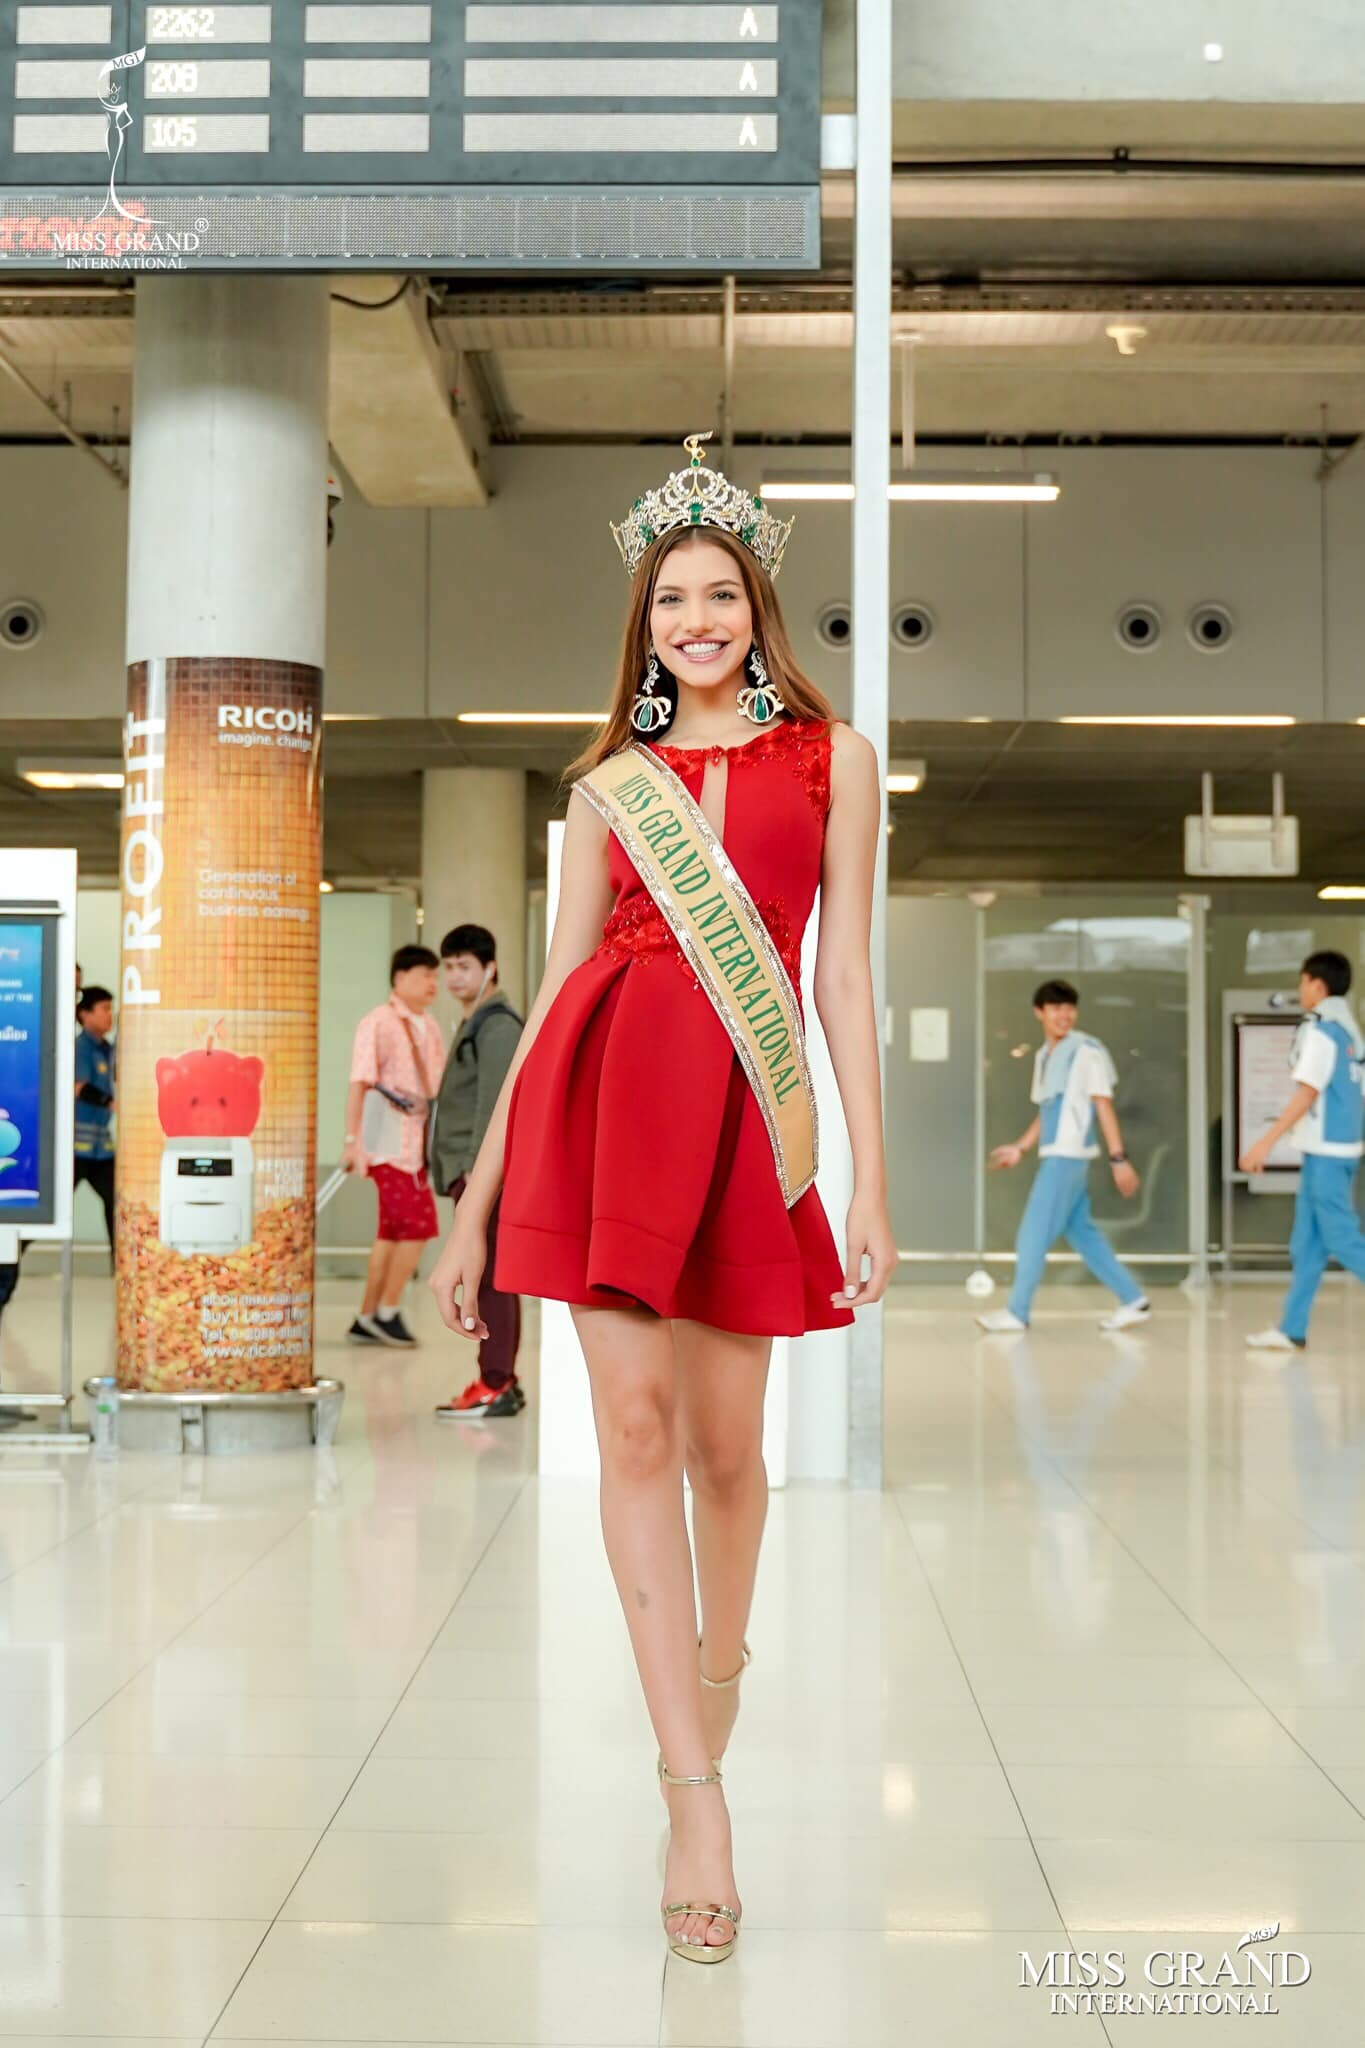 lourdes valentina figuera, miss grand international 2019. - Página 13 Prk7110